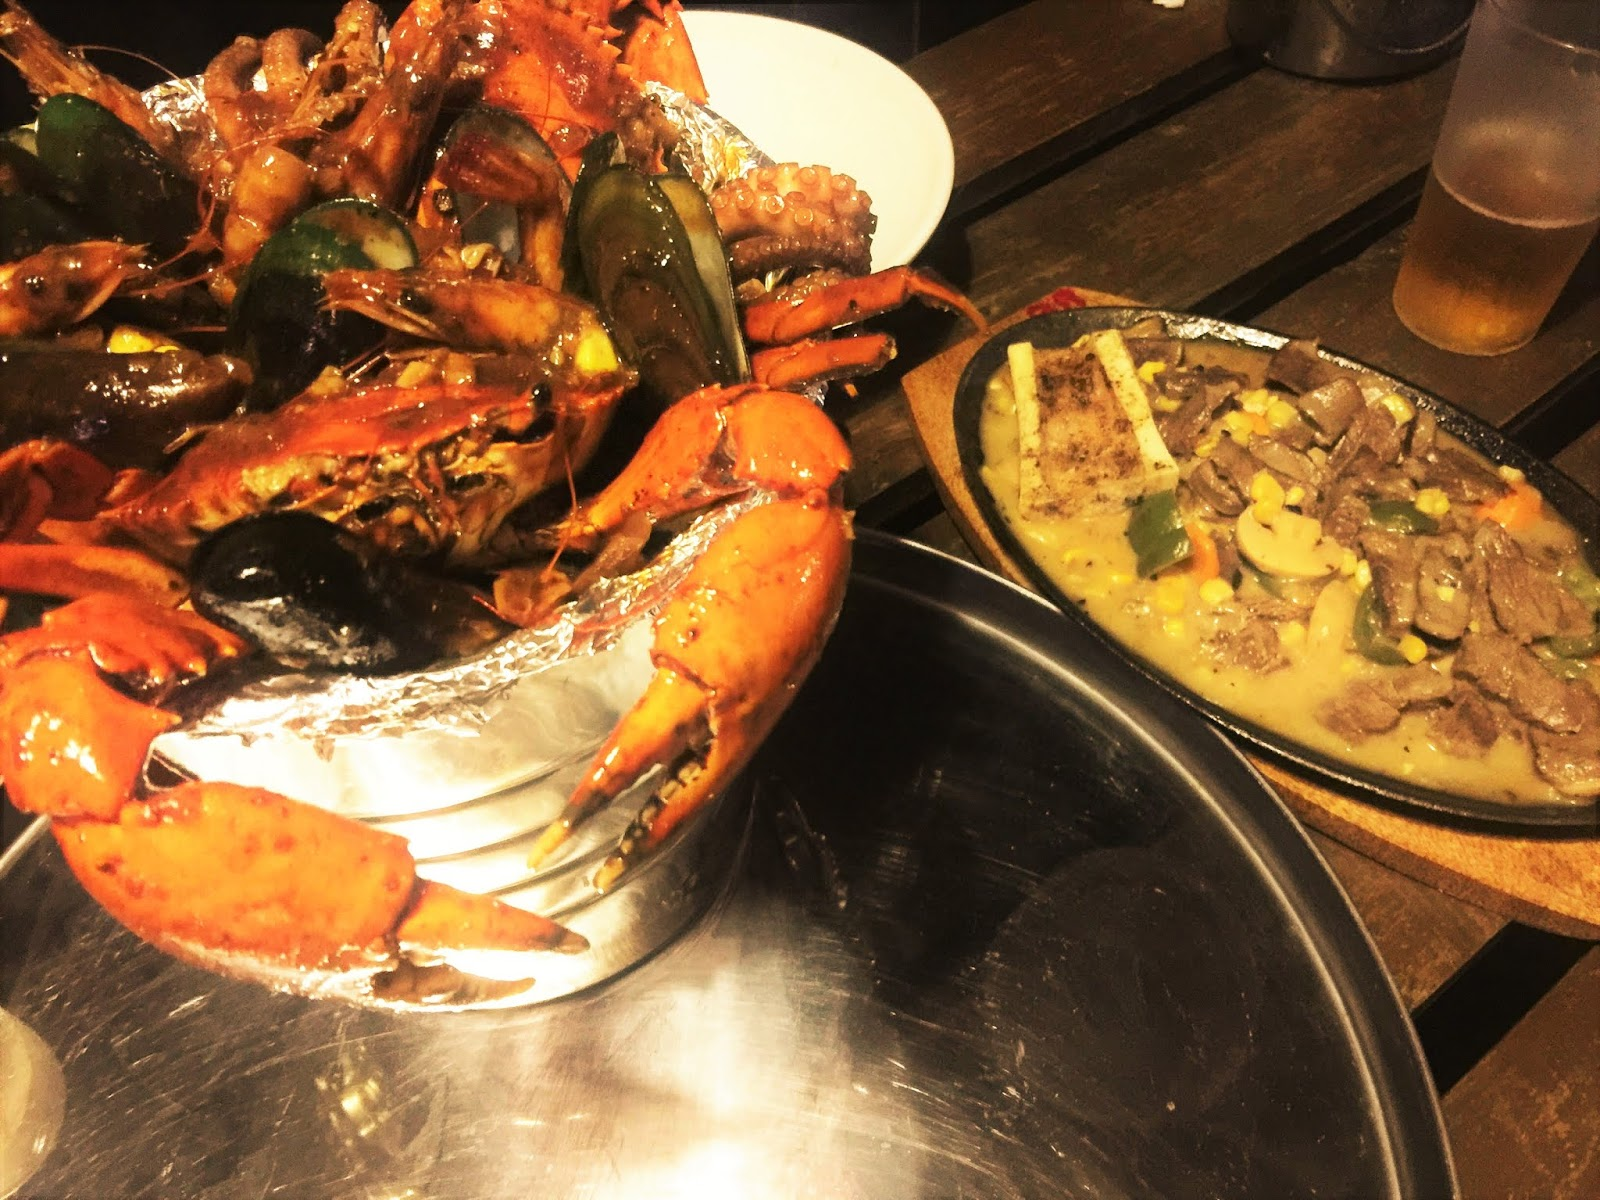 Mixed Seafood Cajun Bucket and Sizzling Bulalo in Hailey's Seafood and Barbecue in Terminal 8, Marikina - WTF Review